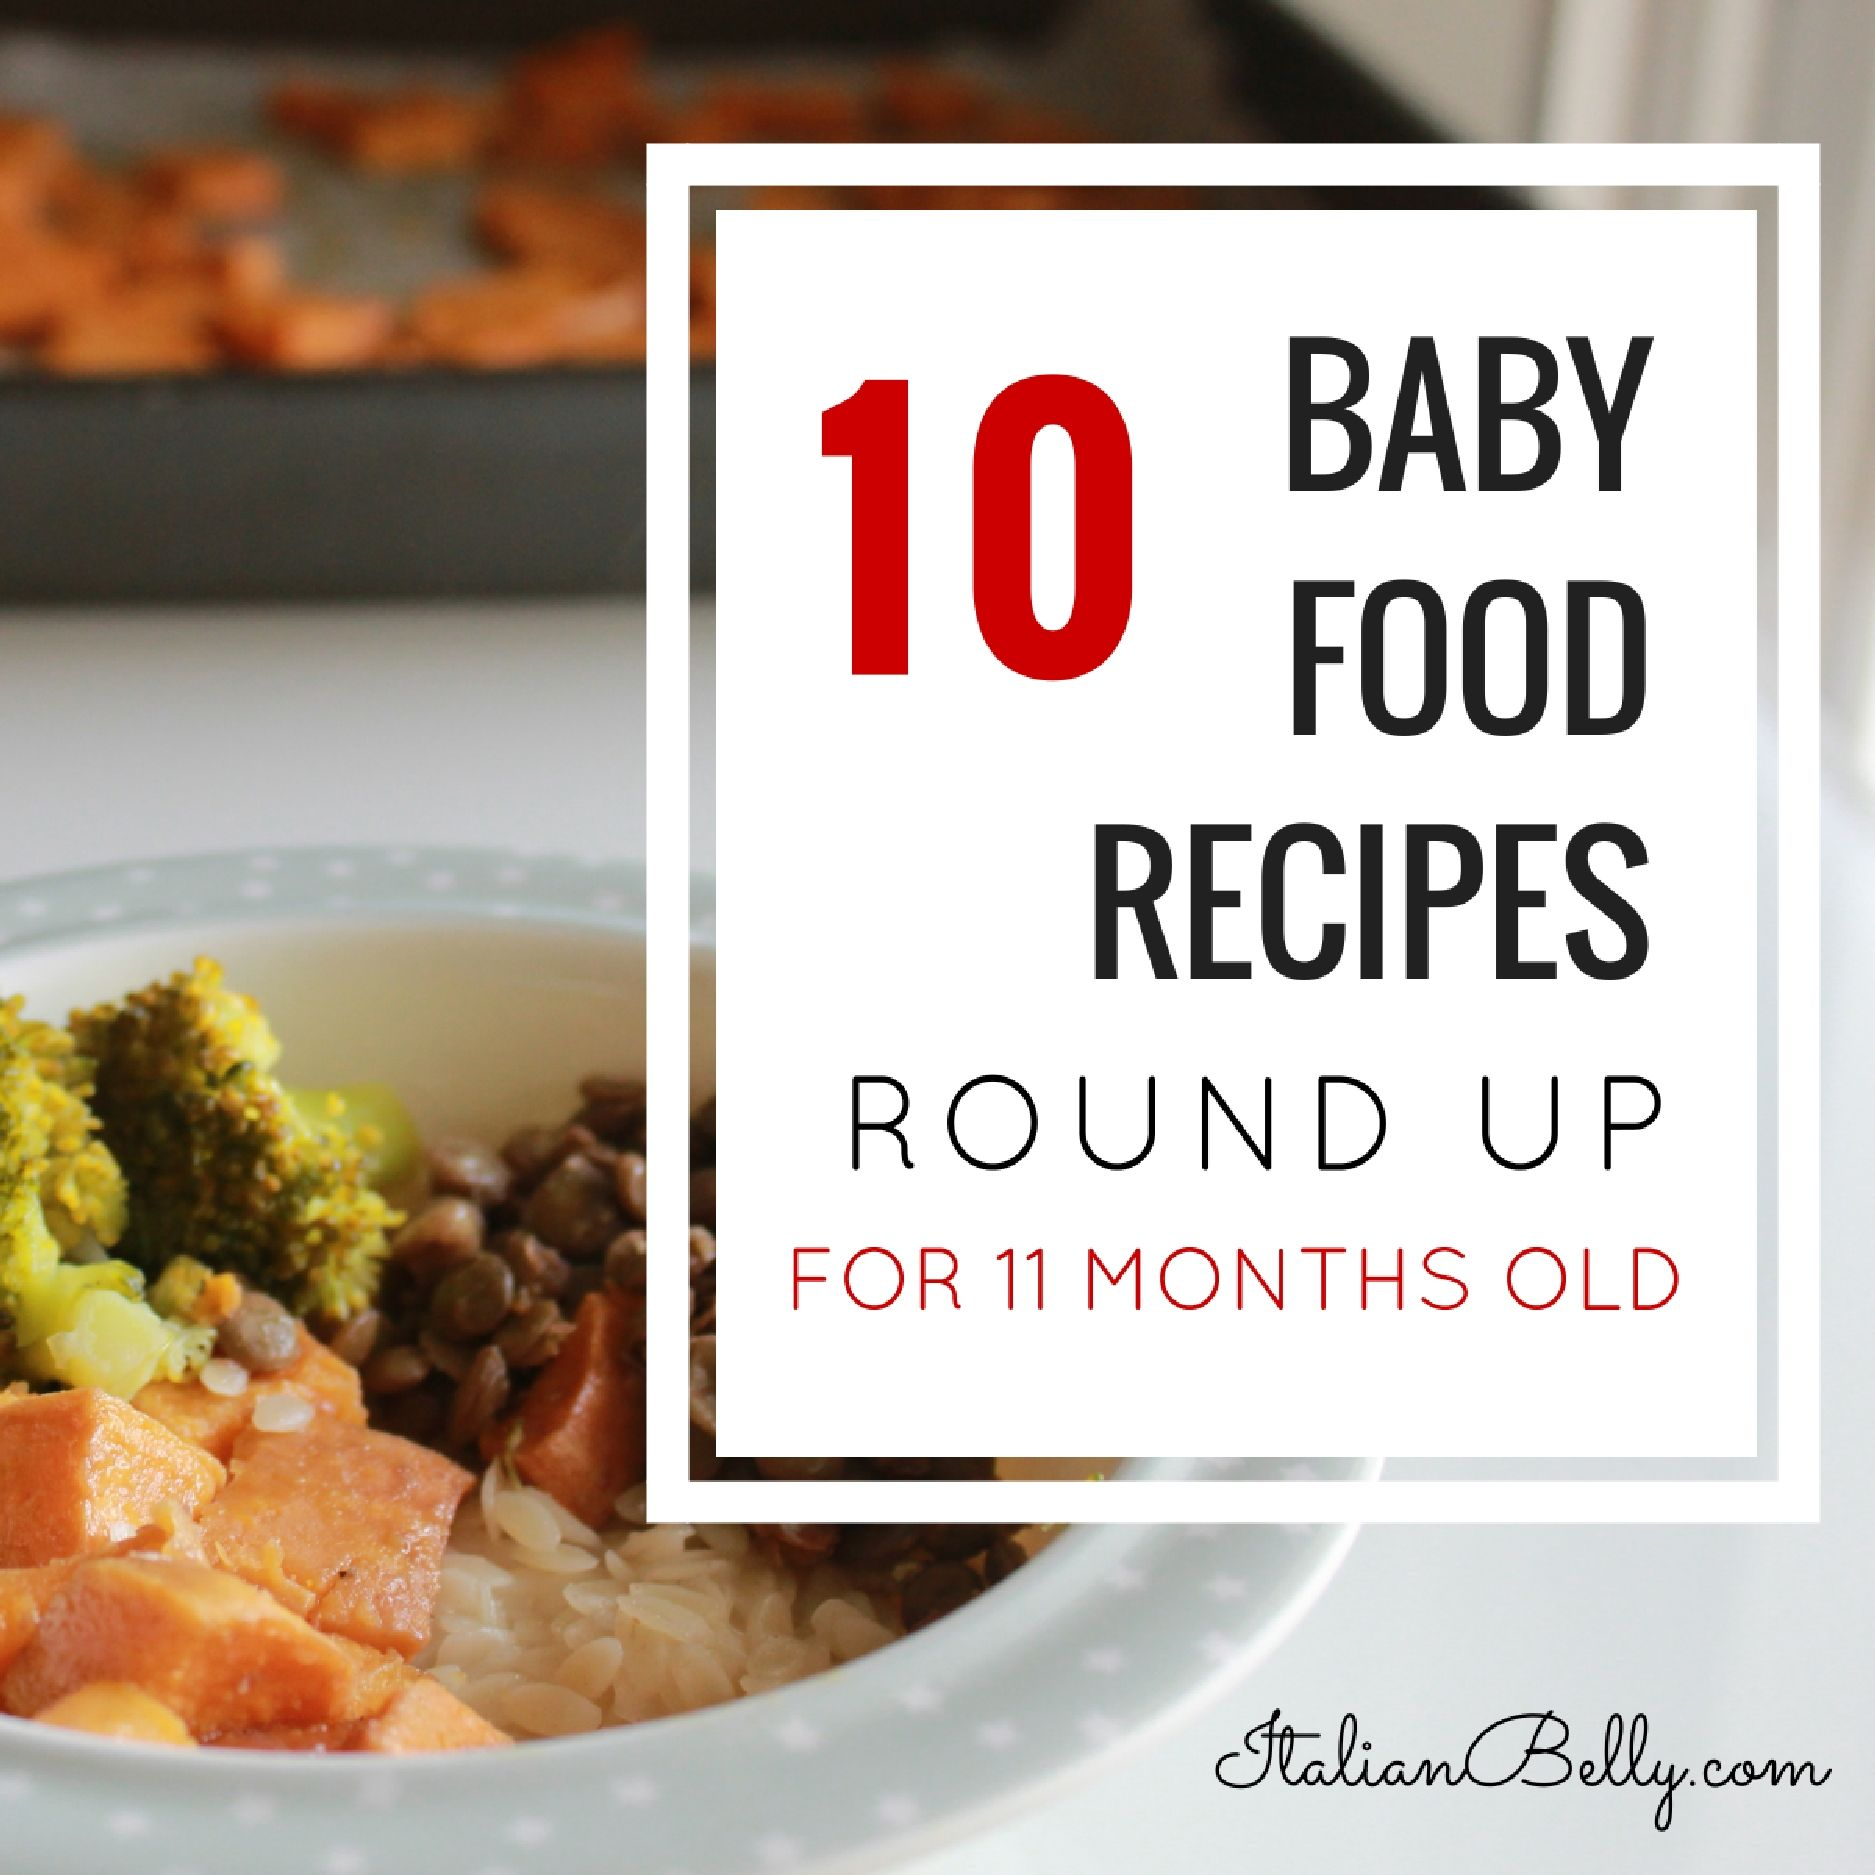 baby food recipes for 11 month-old round up | recipes | pinterest